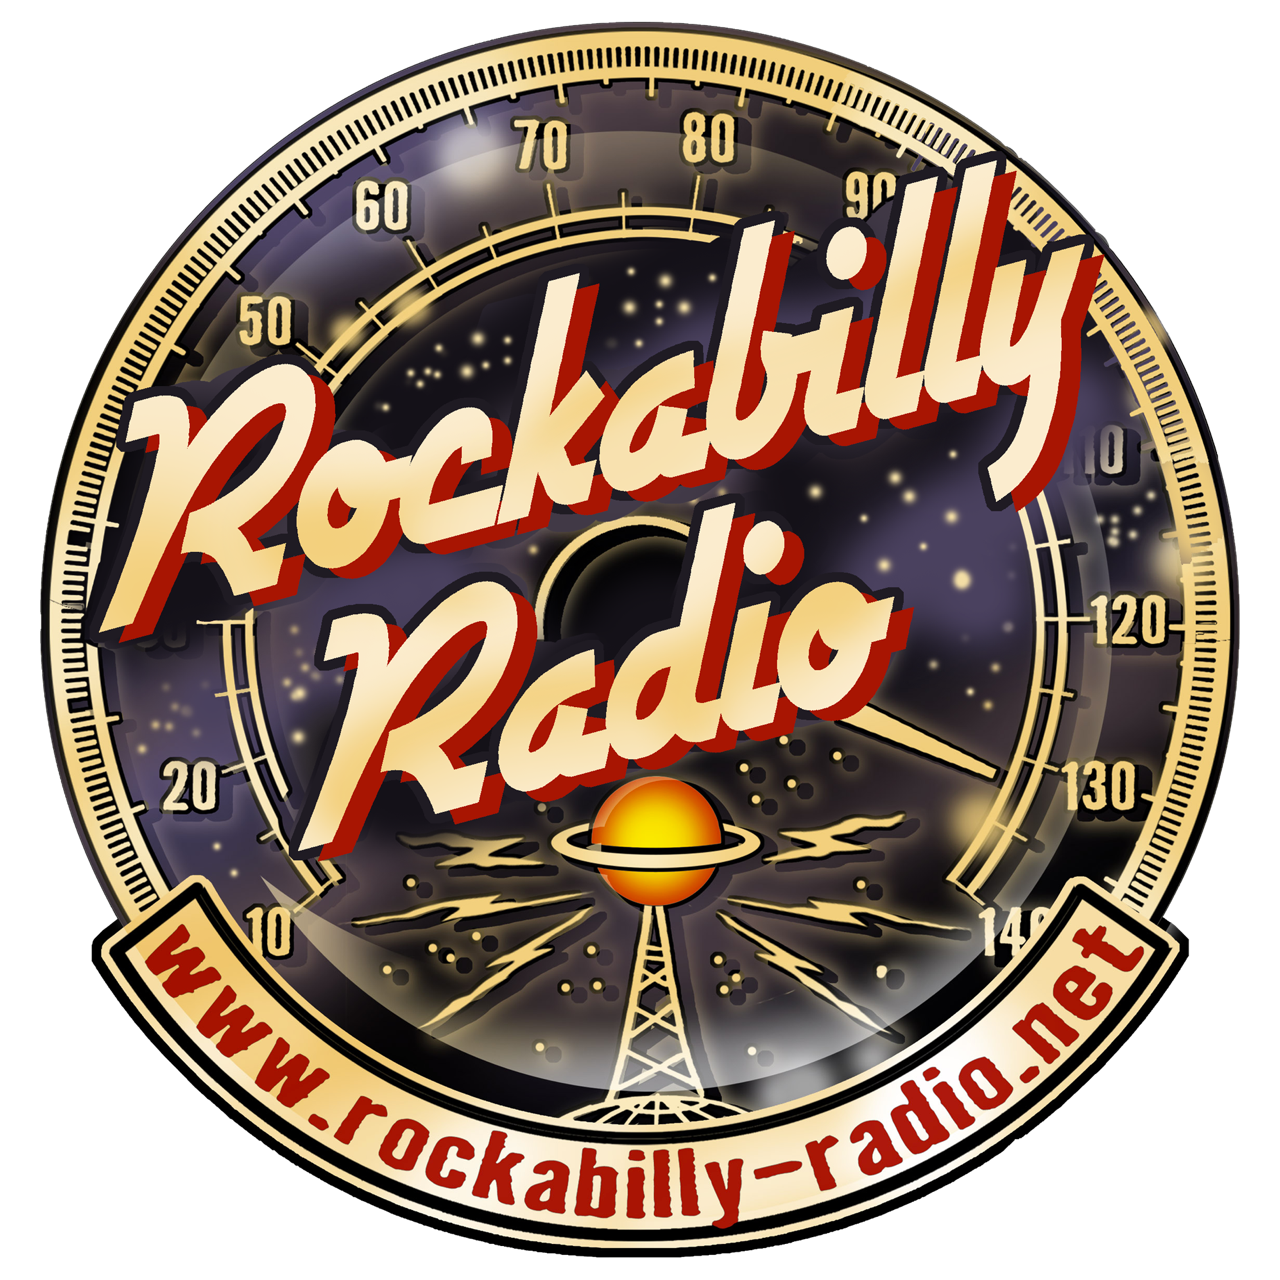 Tune into Rockabilly-Radio.Net